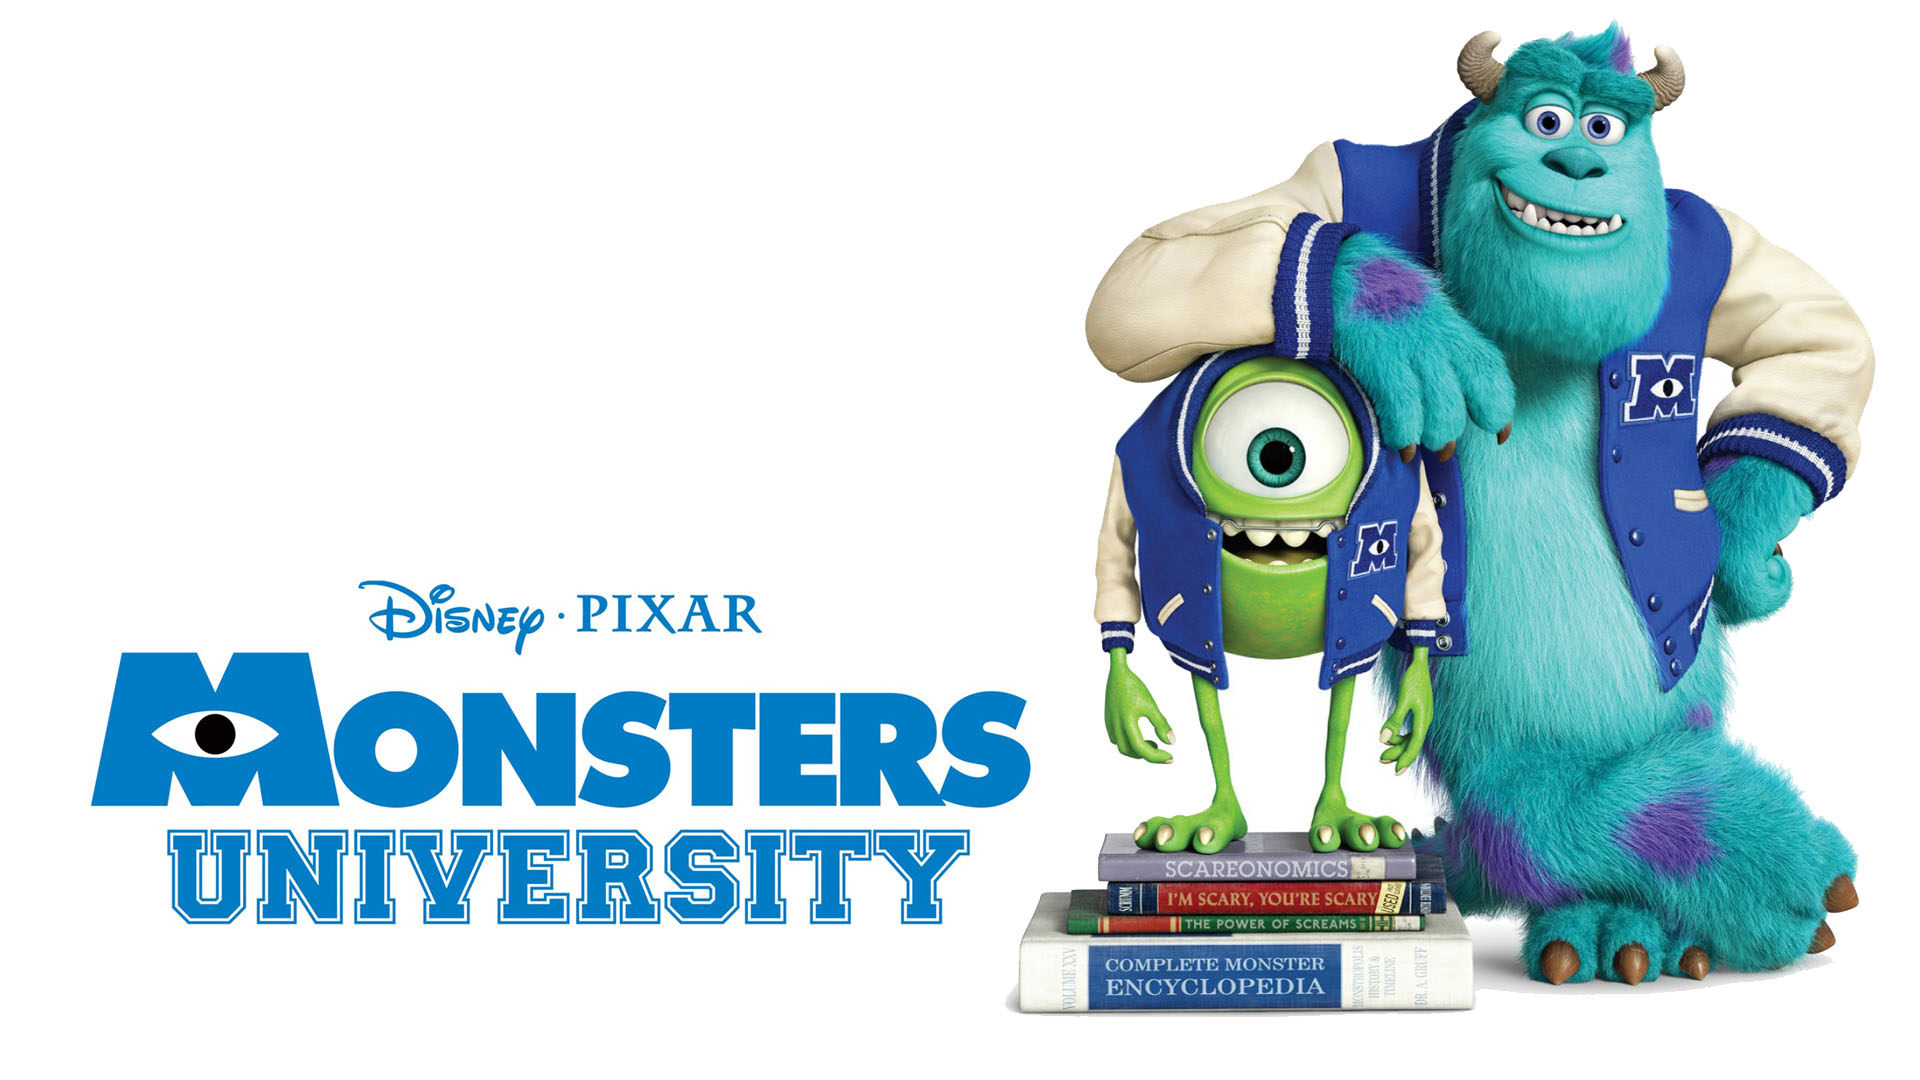 Monsters university 2013 film phage monster university 2013 voltagebd Image collections